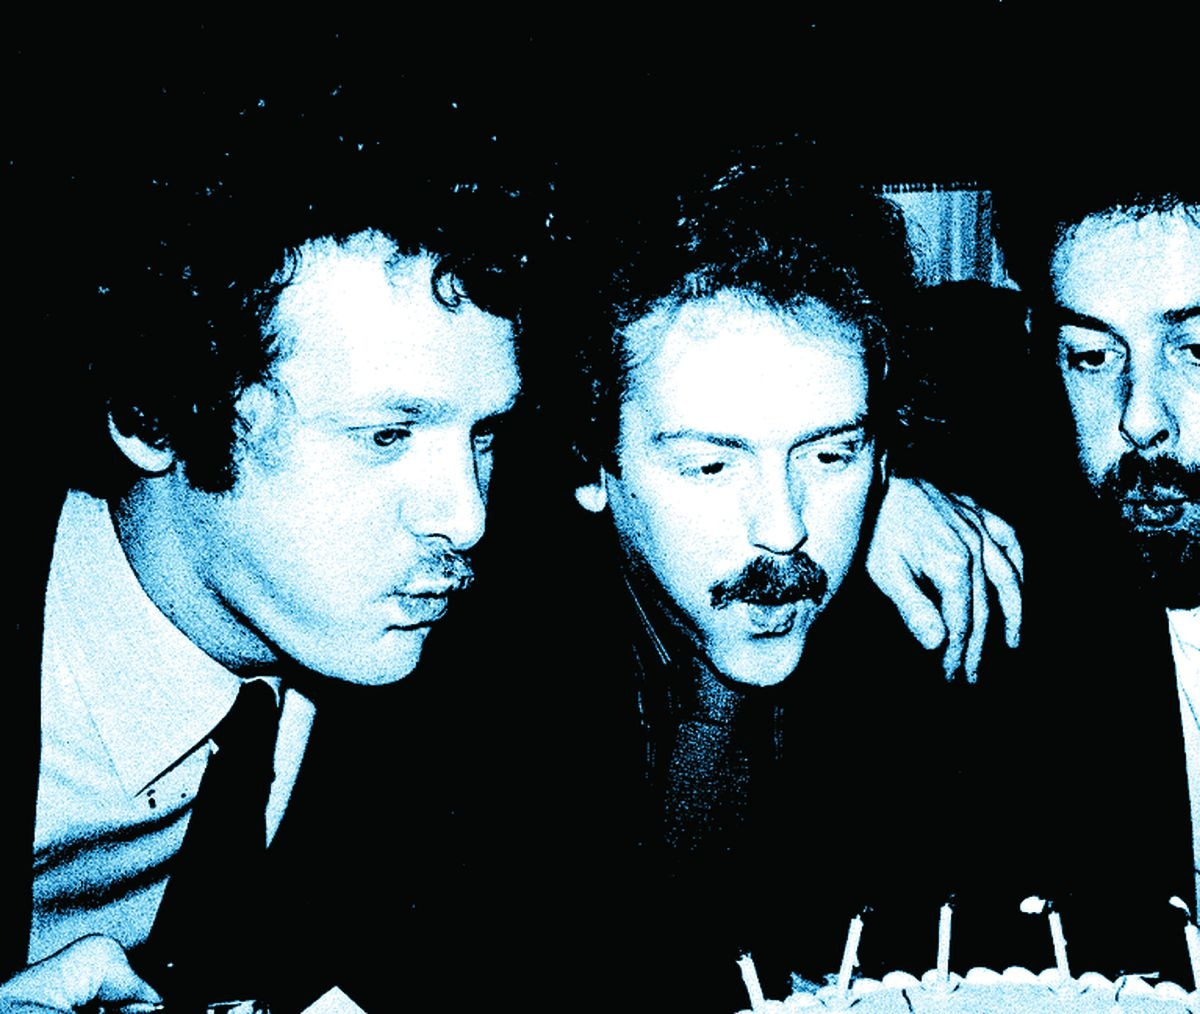 The founder members of the Campaign for Real Ale celebrating the group's 10th birthday in 1981: Jim Makin, Bill Mellor, Michael Hardman MBE, Graham Lees